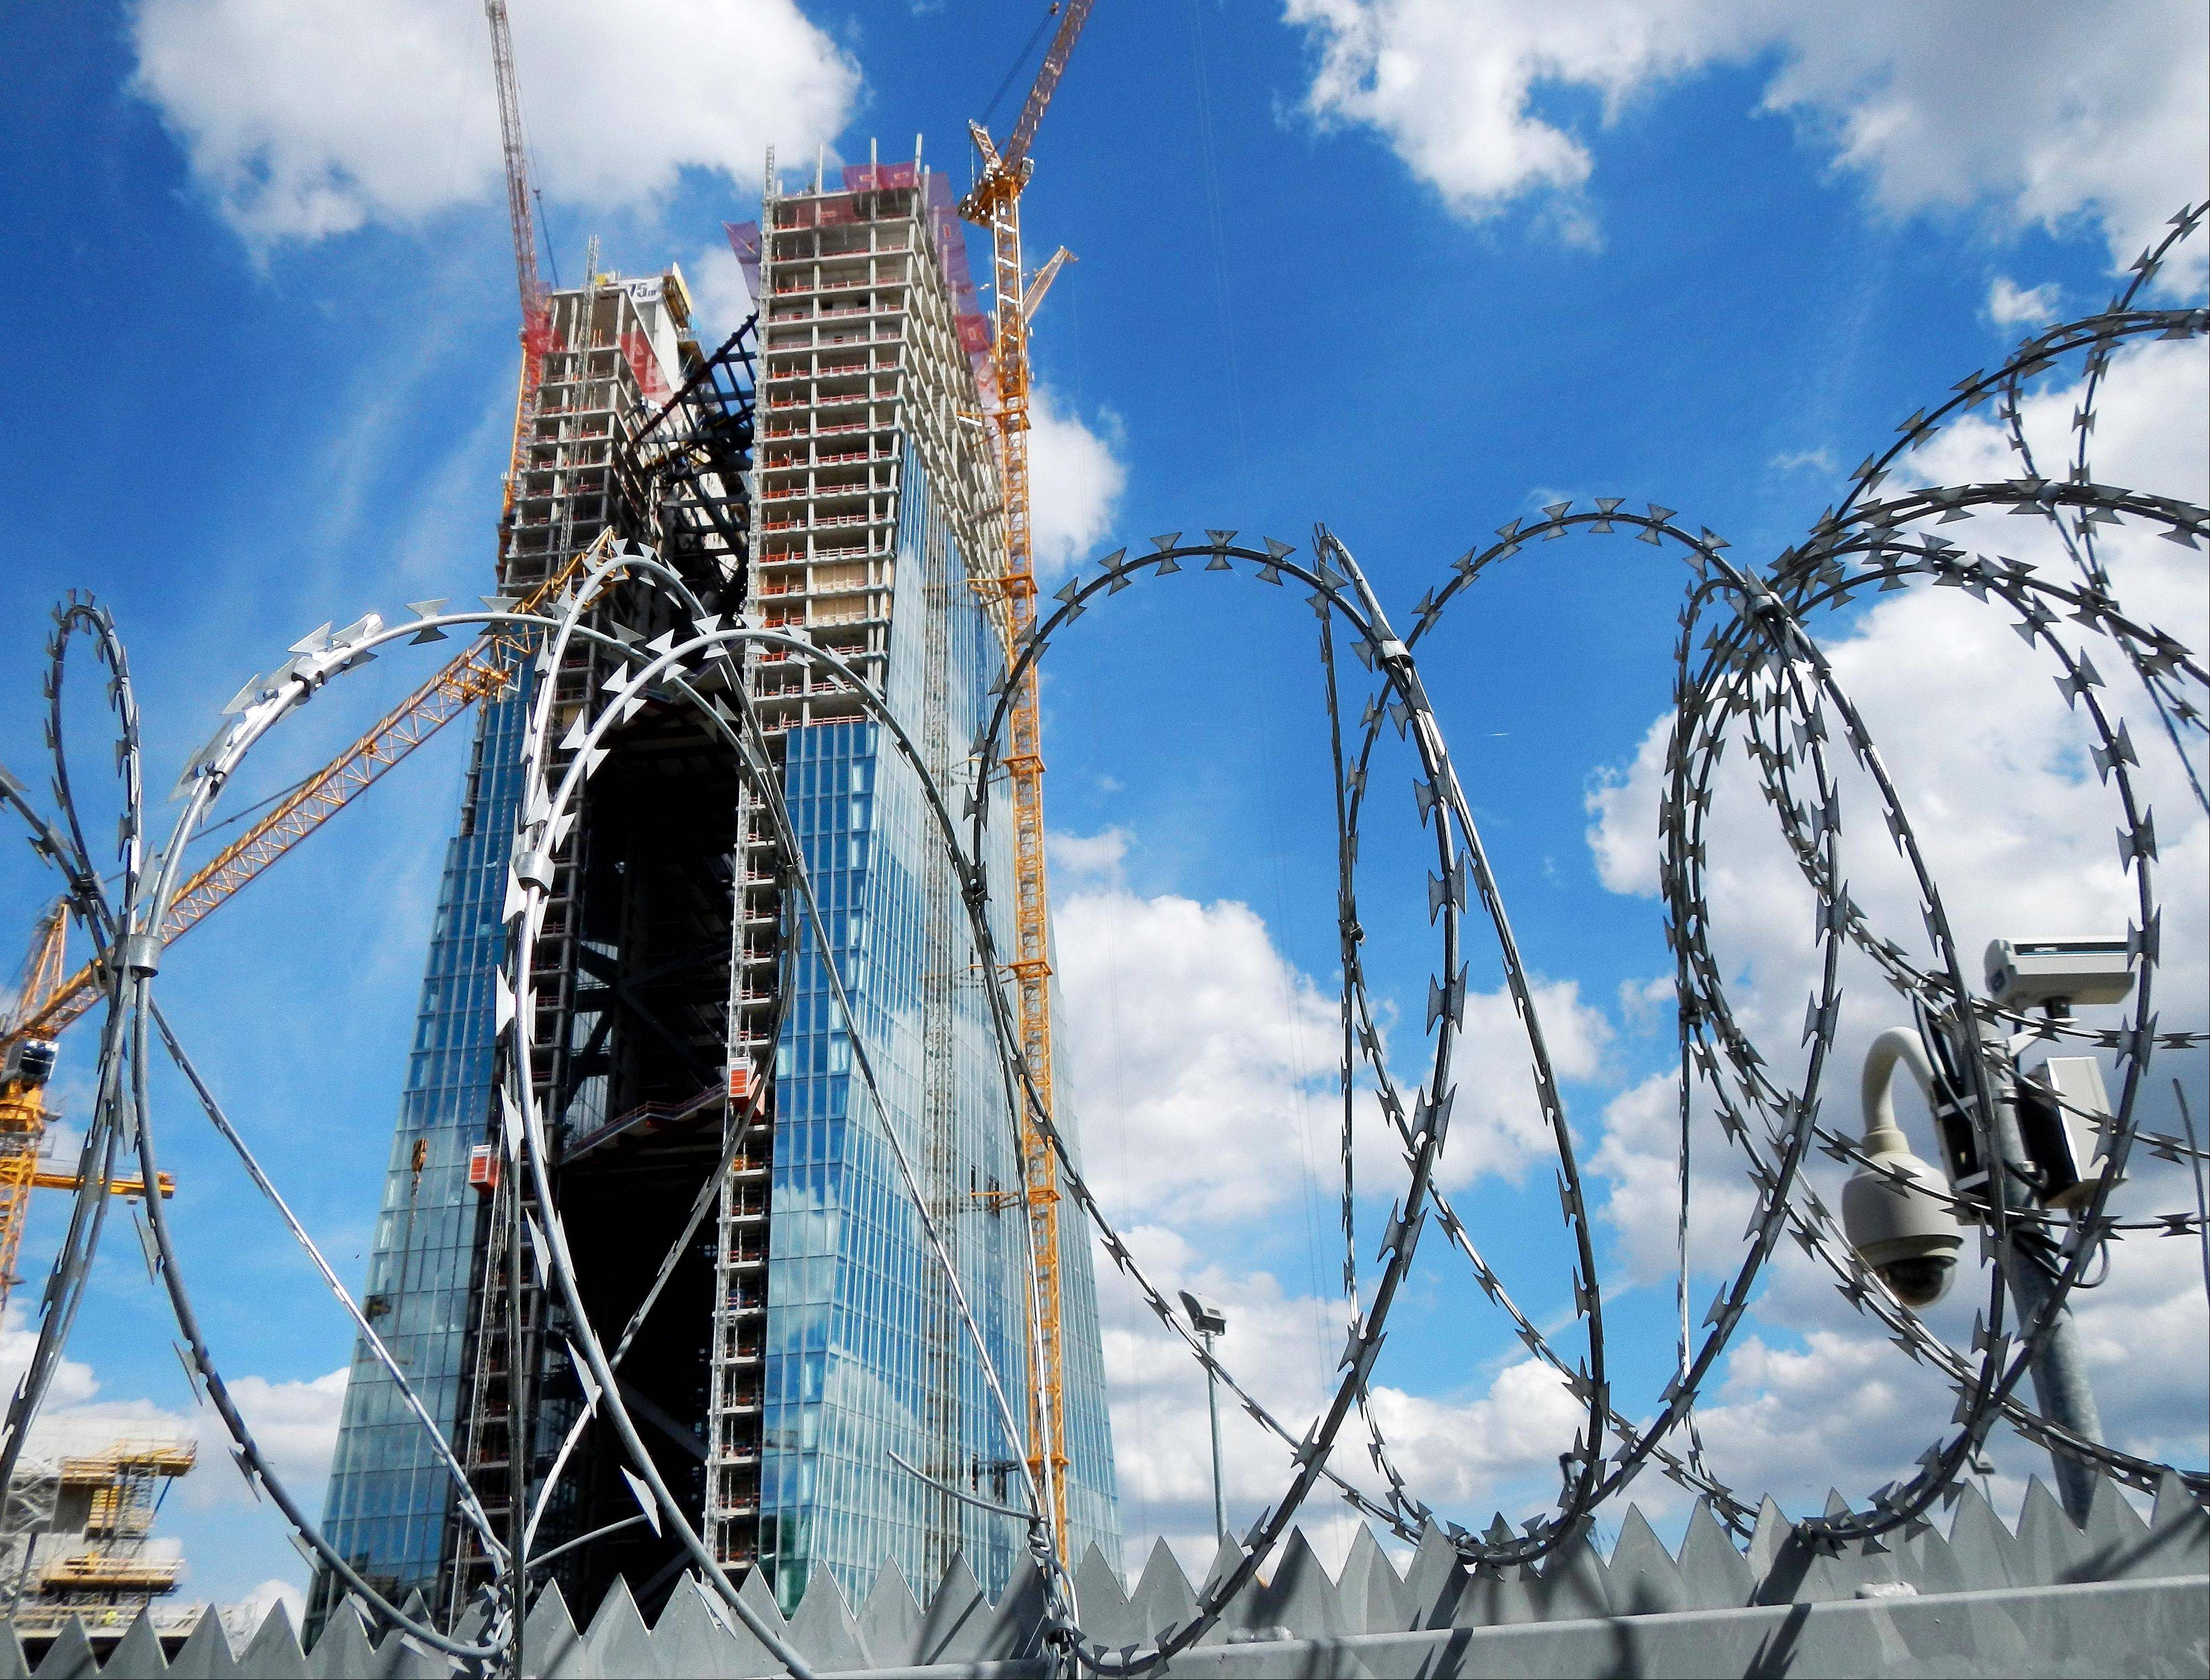 The new headquarter of the European Central Bank rises behind barbed wire in Frankfurt, Germany